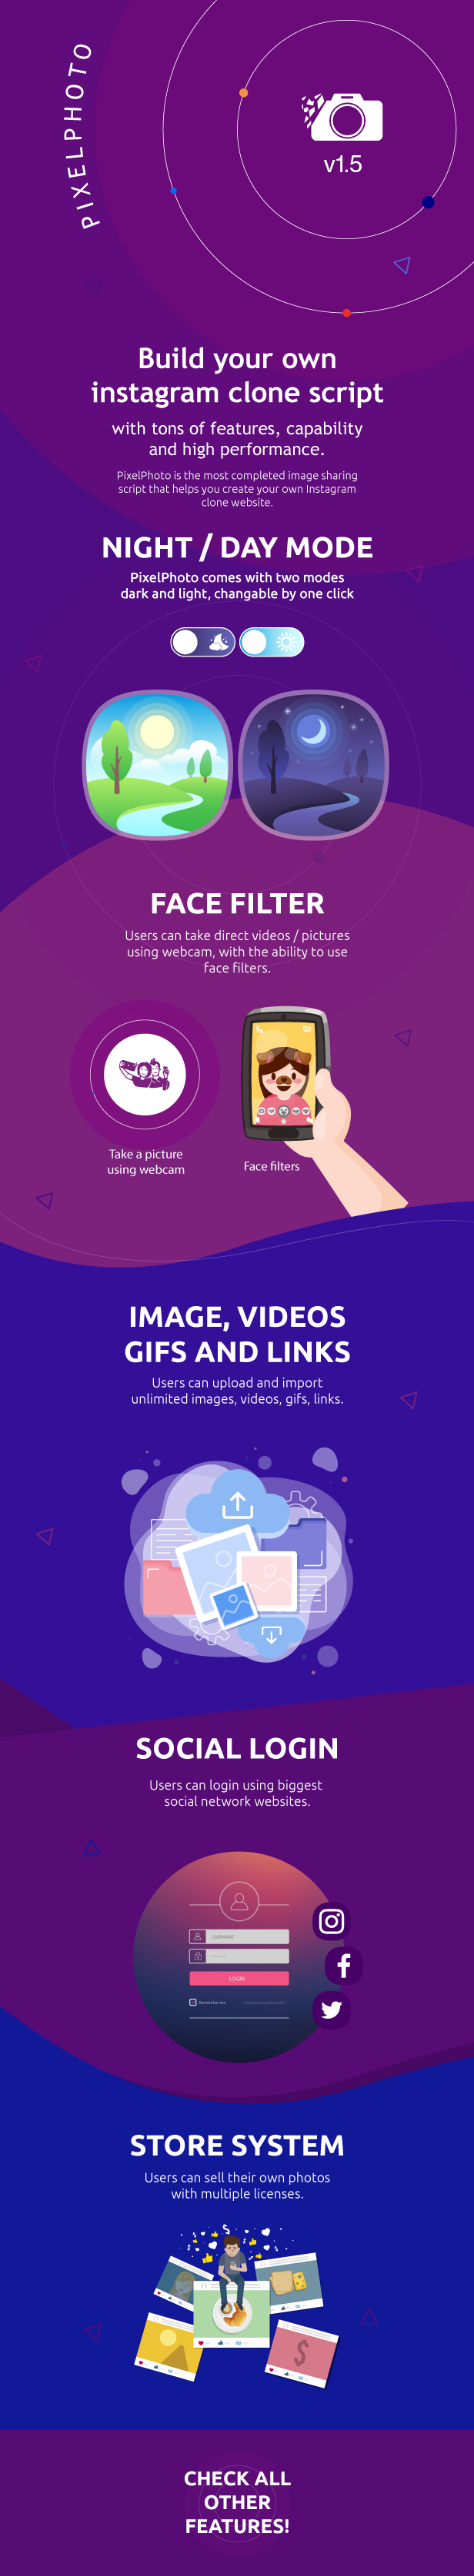 PixelPhoto - The Ultimate Image Sharing & Photo Social Network Platform - 1